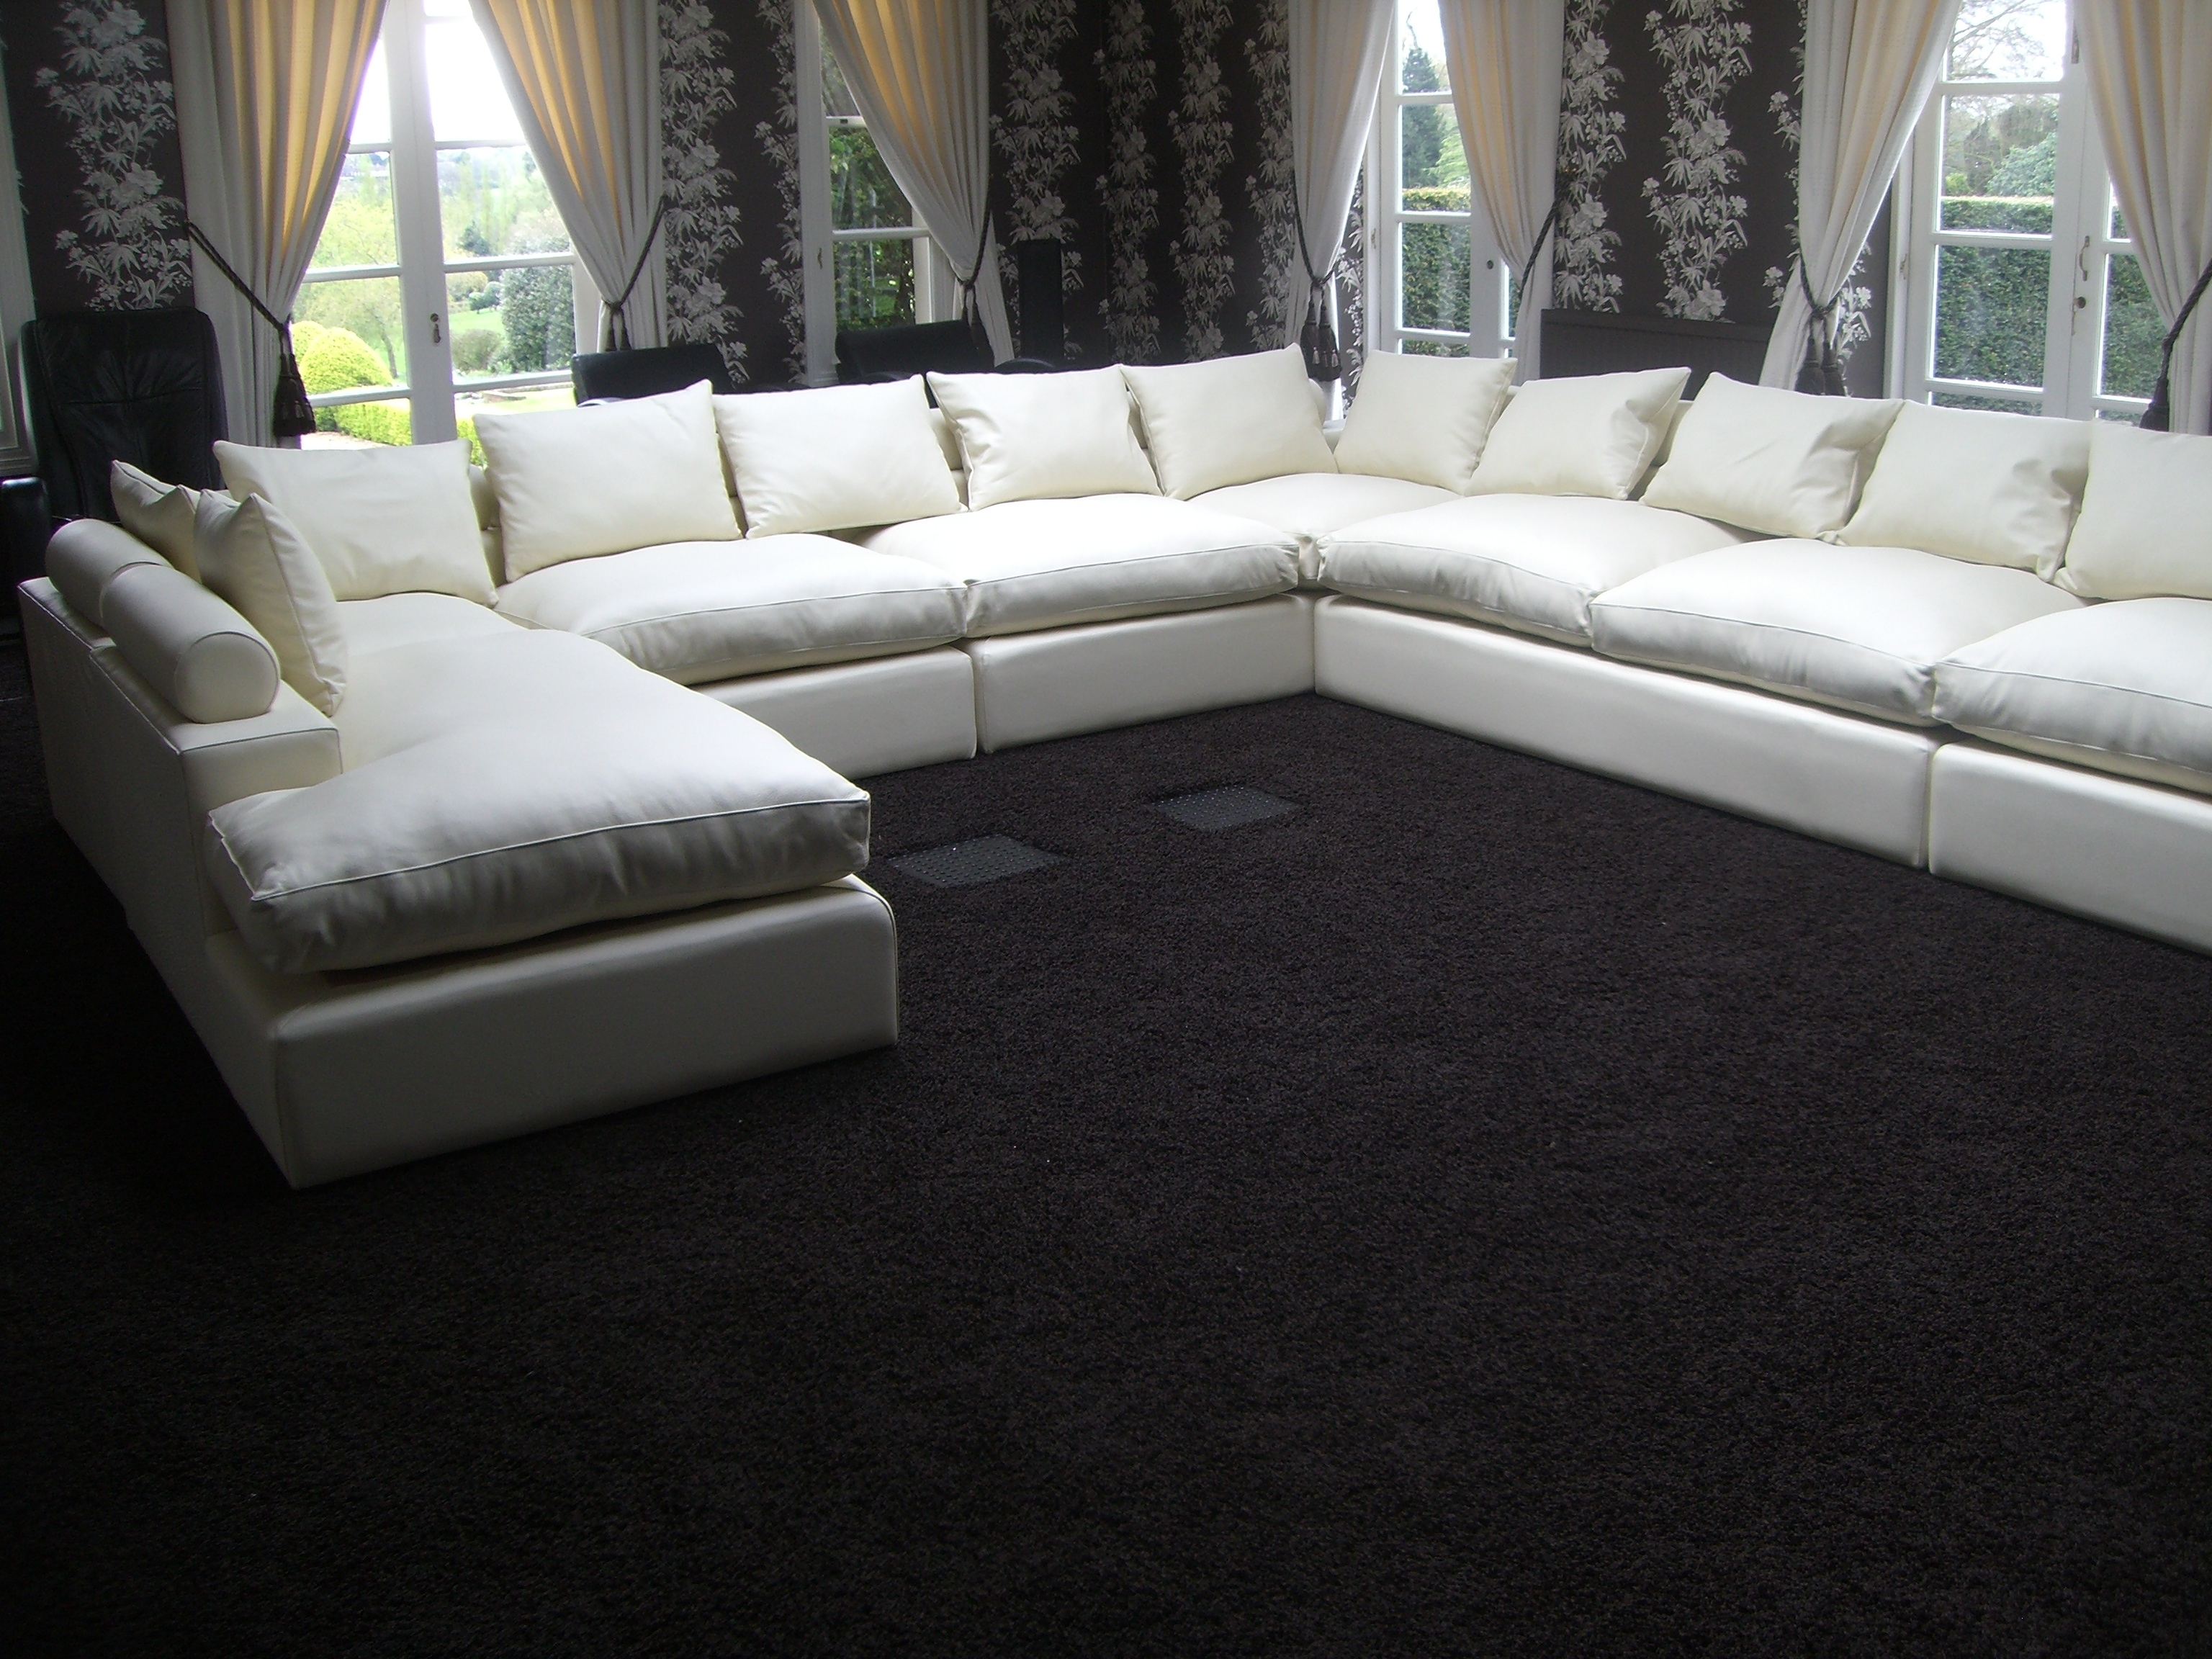 U Shaped Sectionals With Regard To 2018 Sofa : Endearing U Shaped Fabric Sofa U Shaped Fabric Sofa U (View 14 of 15)